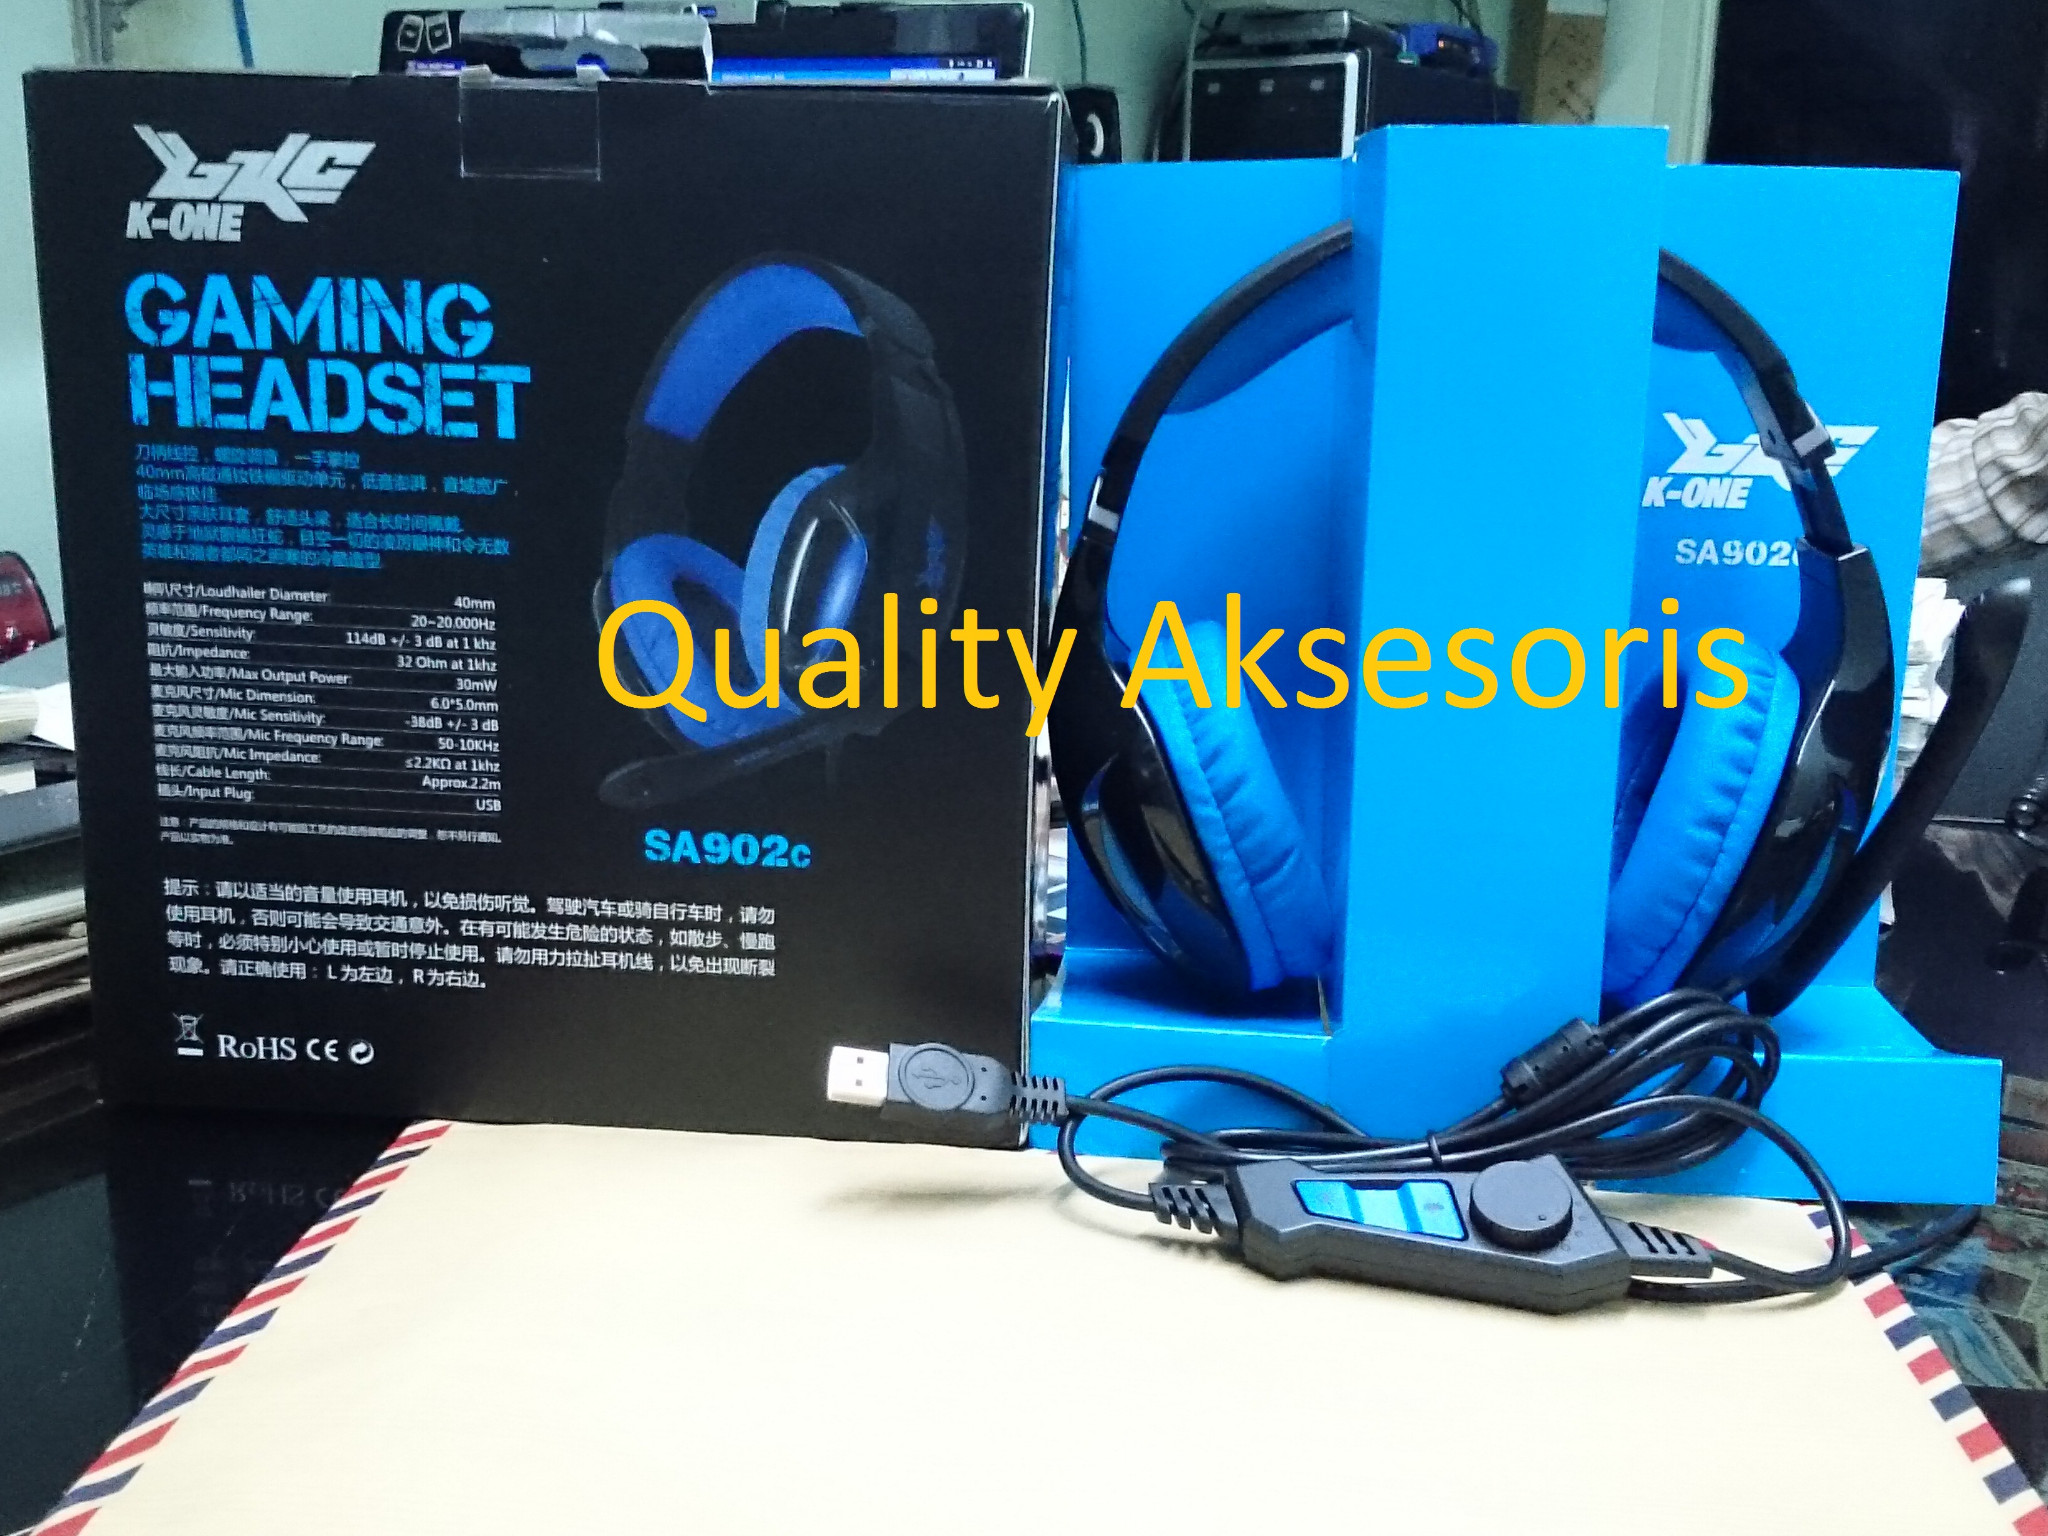 harga Gaming Headset K-One SA 902 c Tokopedia.com